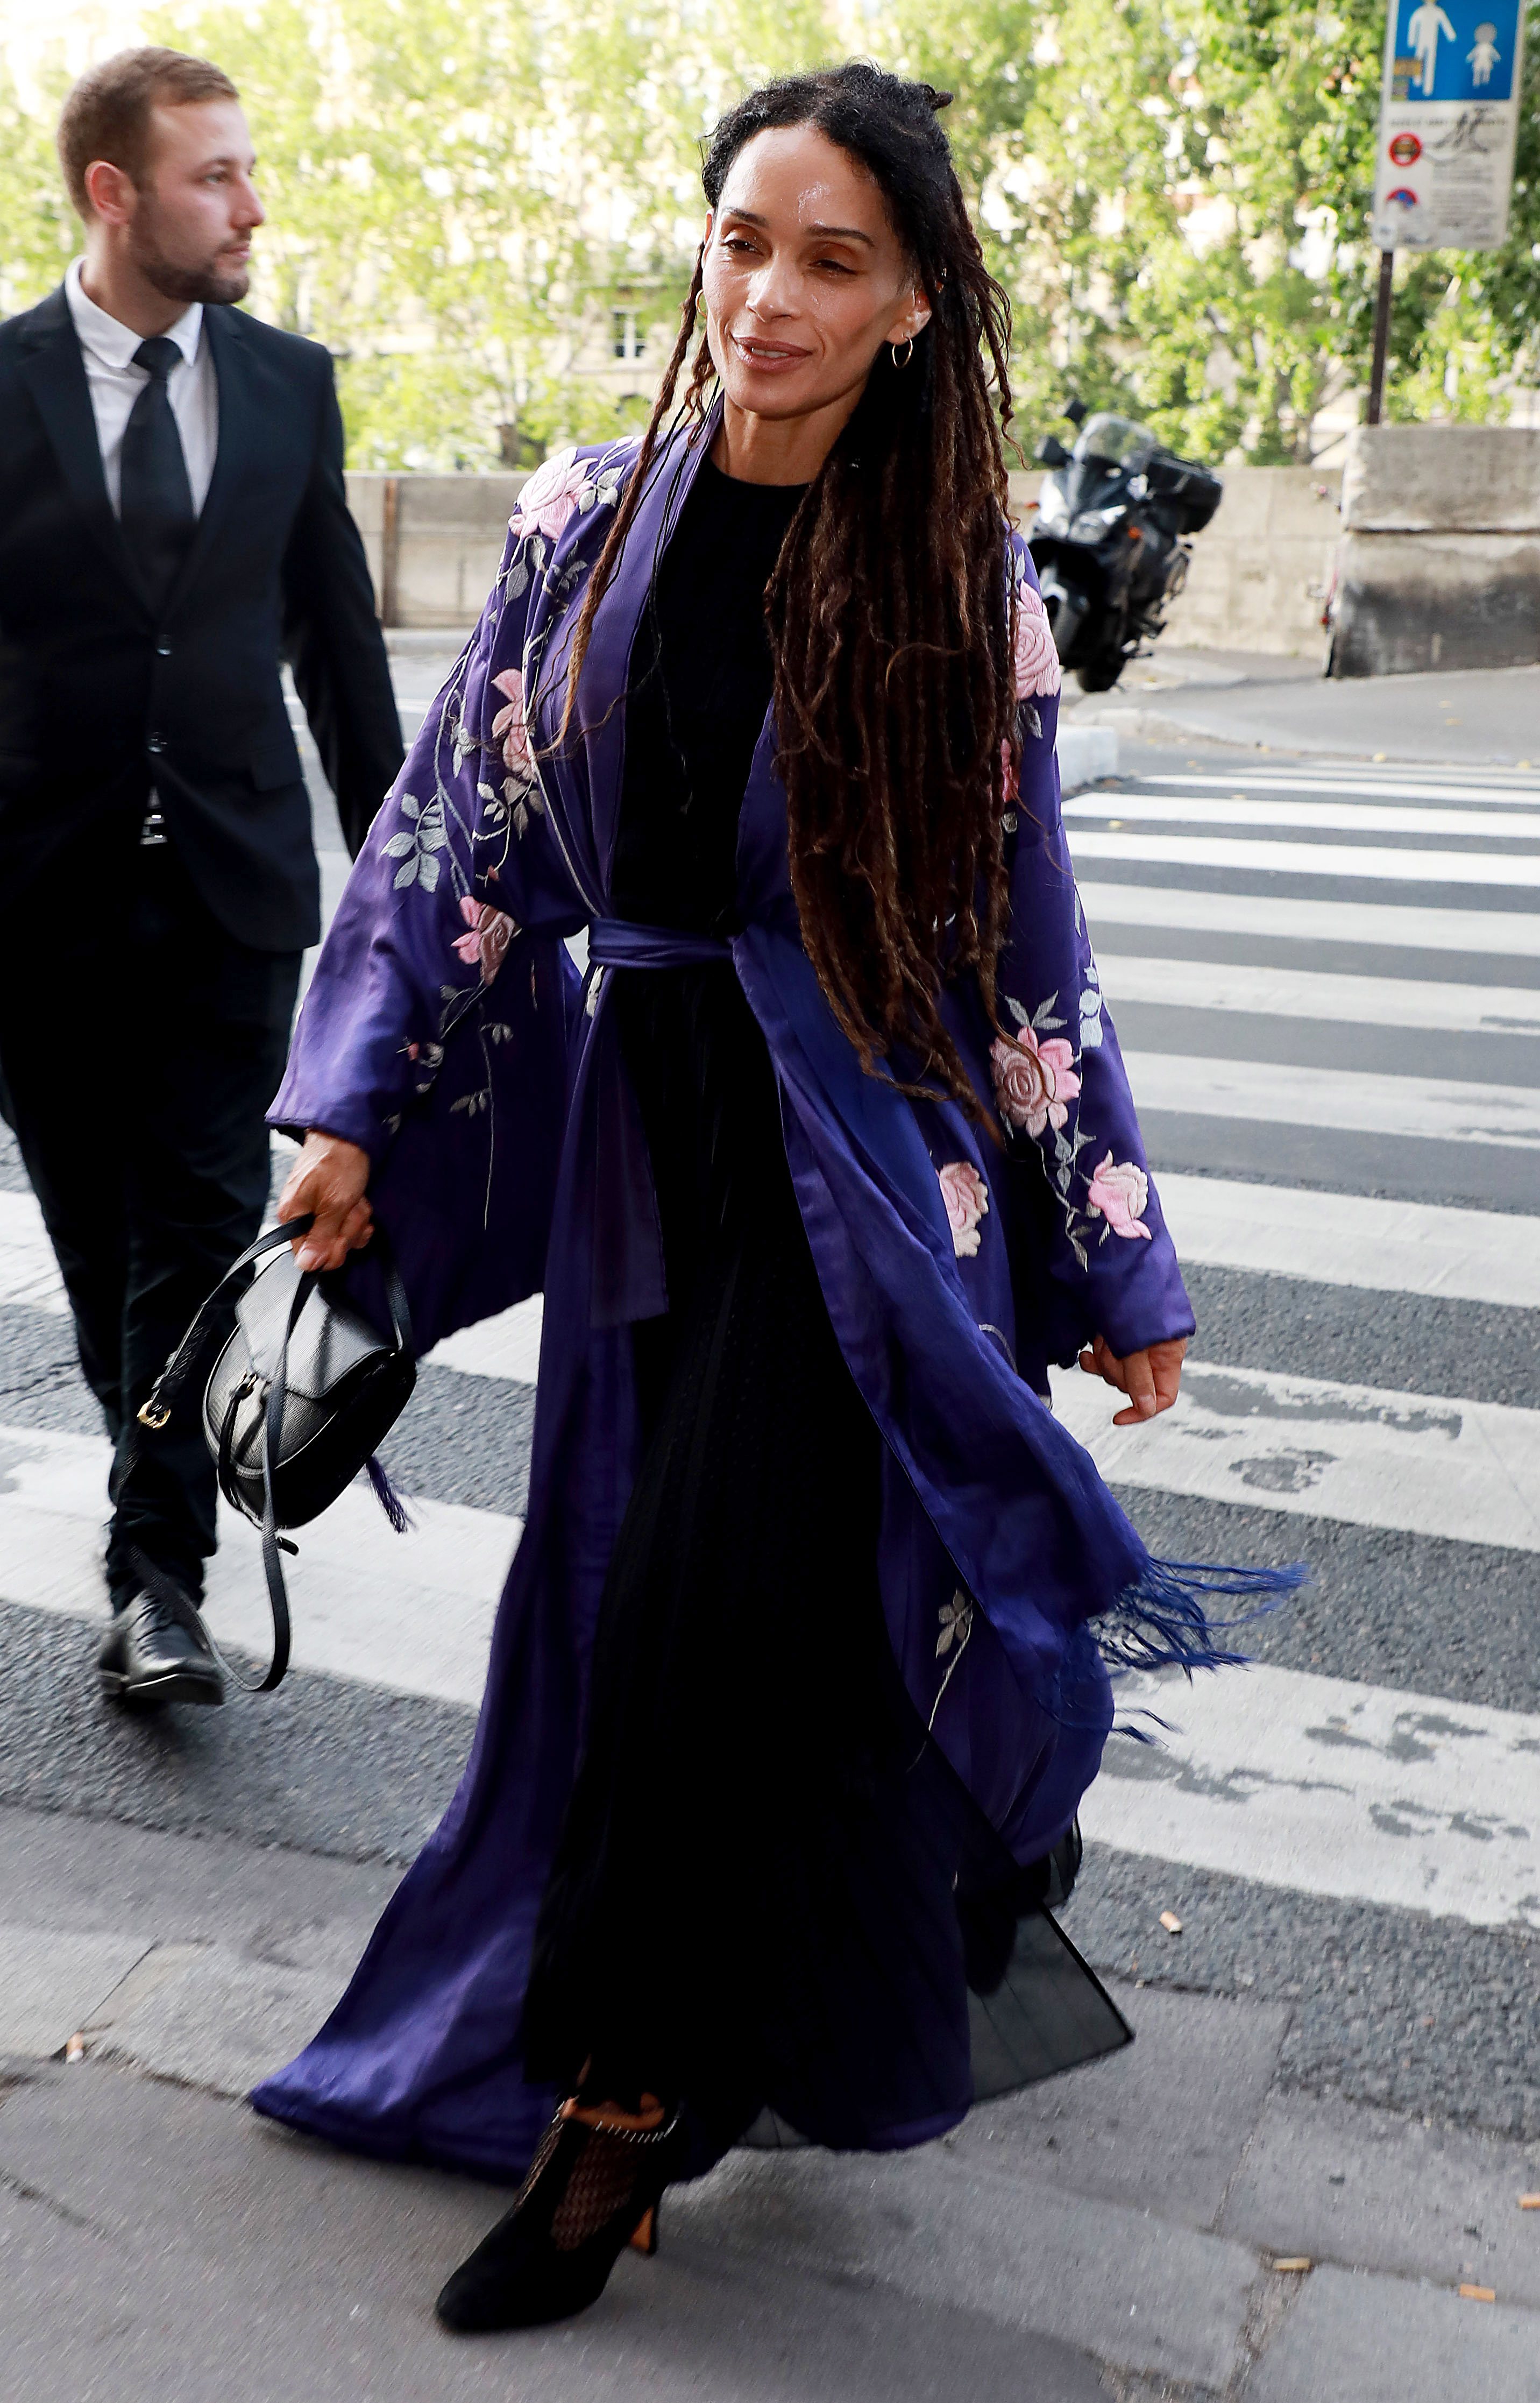 Zoe Kravitz Karl Glusman attend pre-wedding party French restaurant Lapérous Paris - Zoë's look-alike mother appeared perfectly at ease in a flowing violet kimono coat.